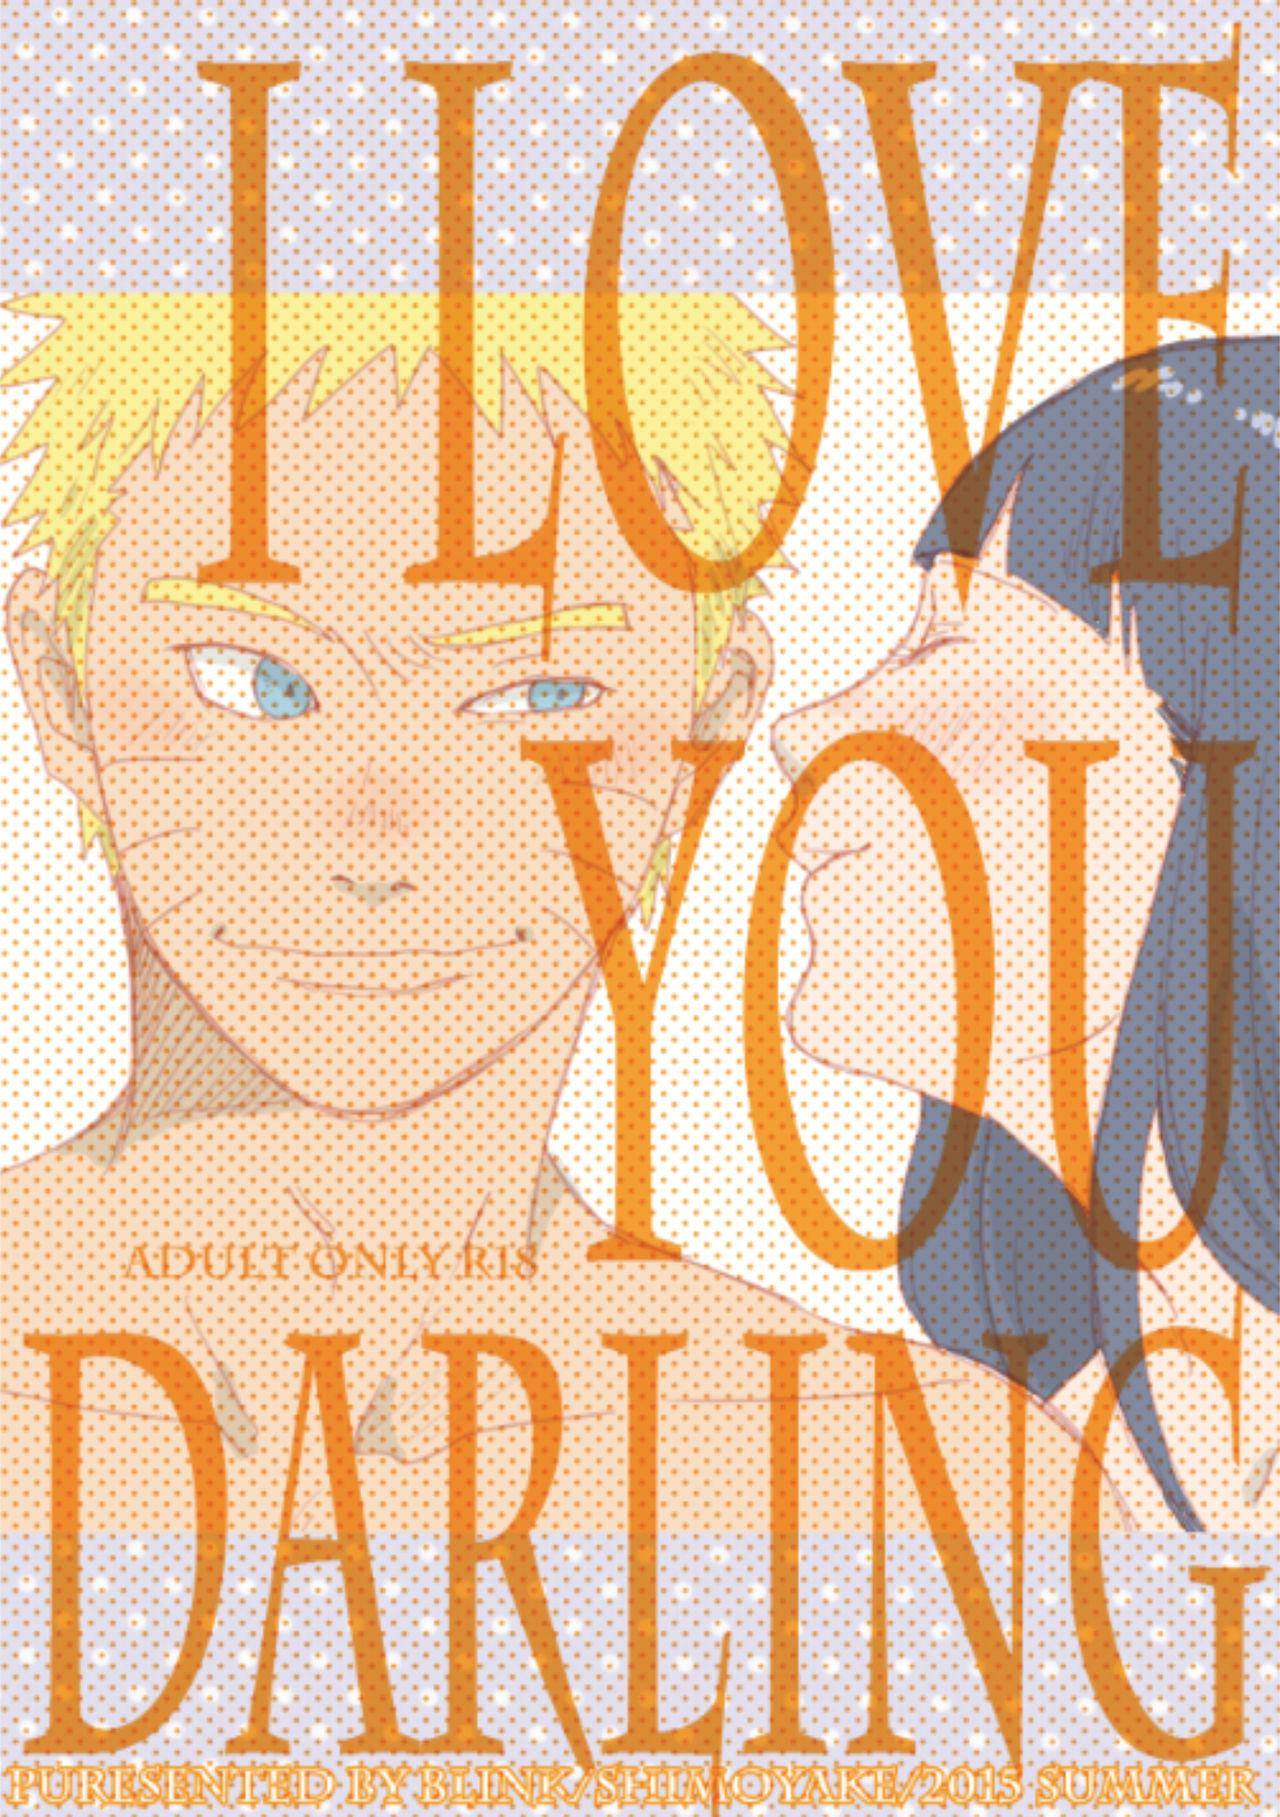 YOUR MY SWEET - I LOVE YOU DARLING 24